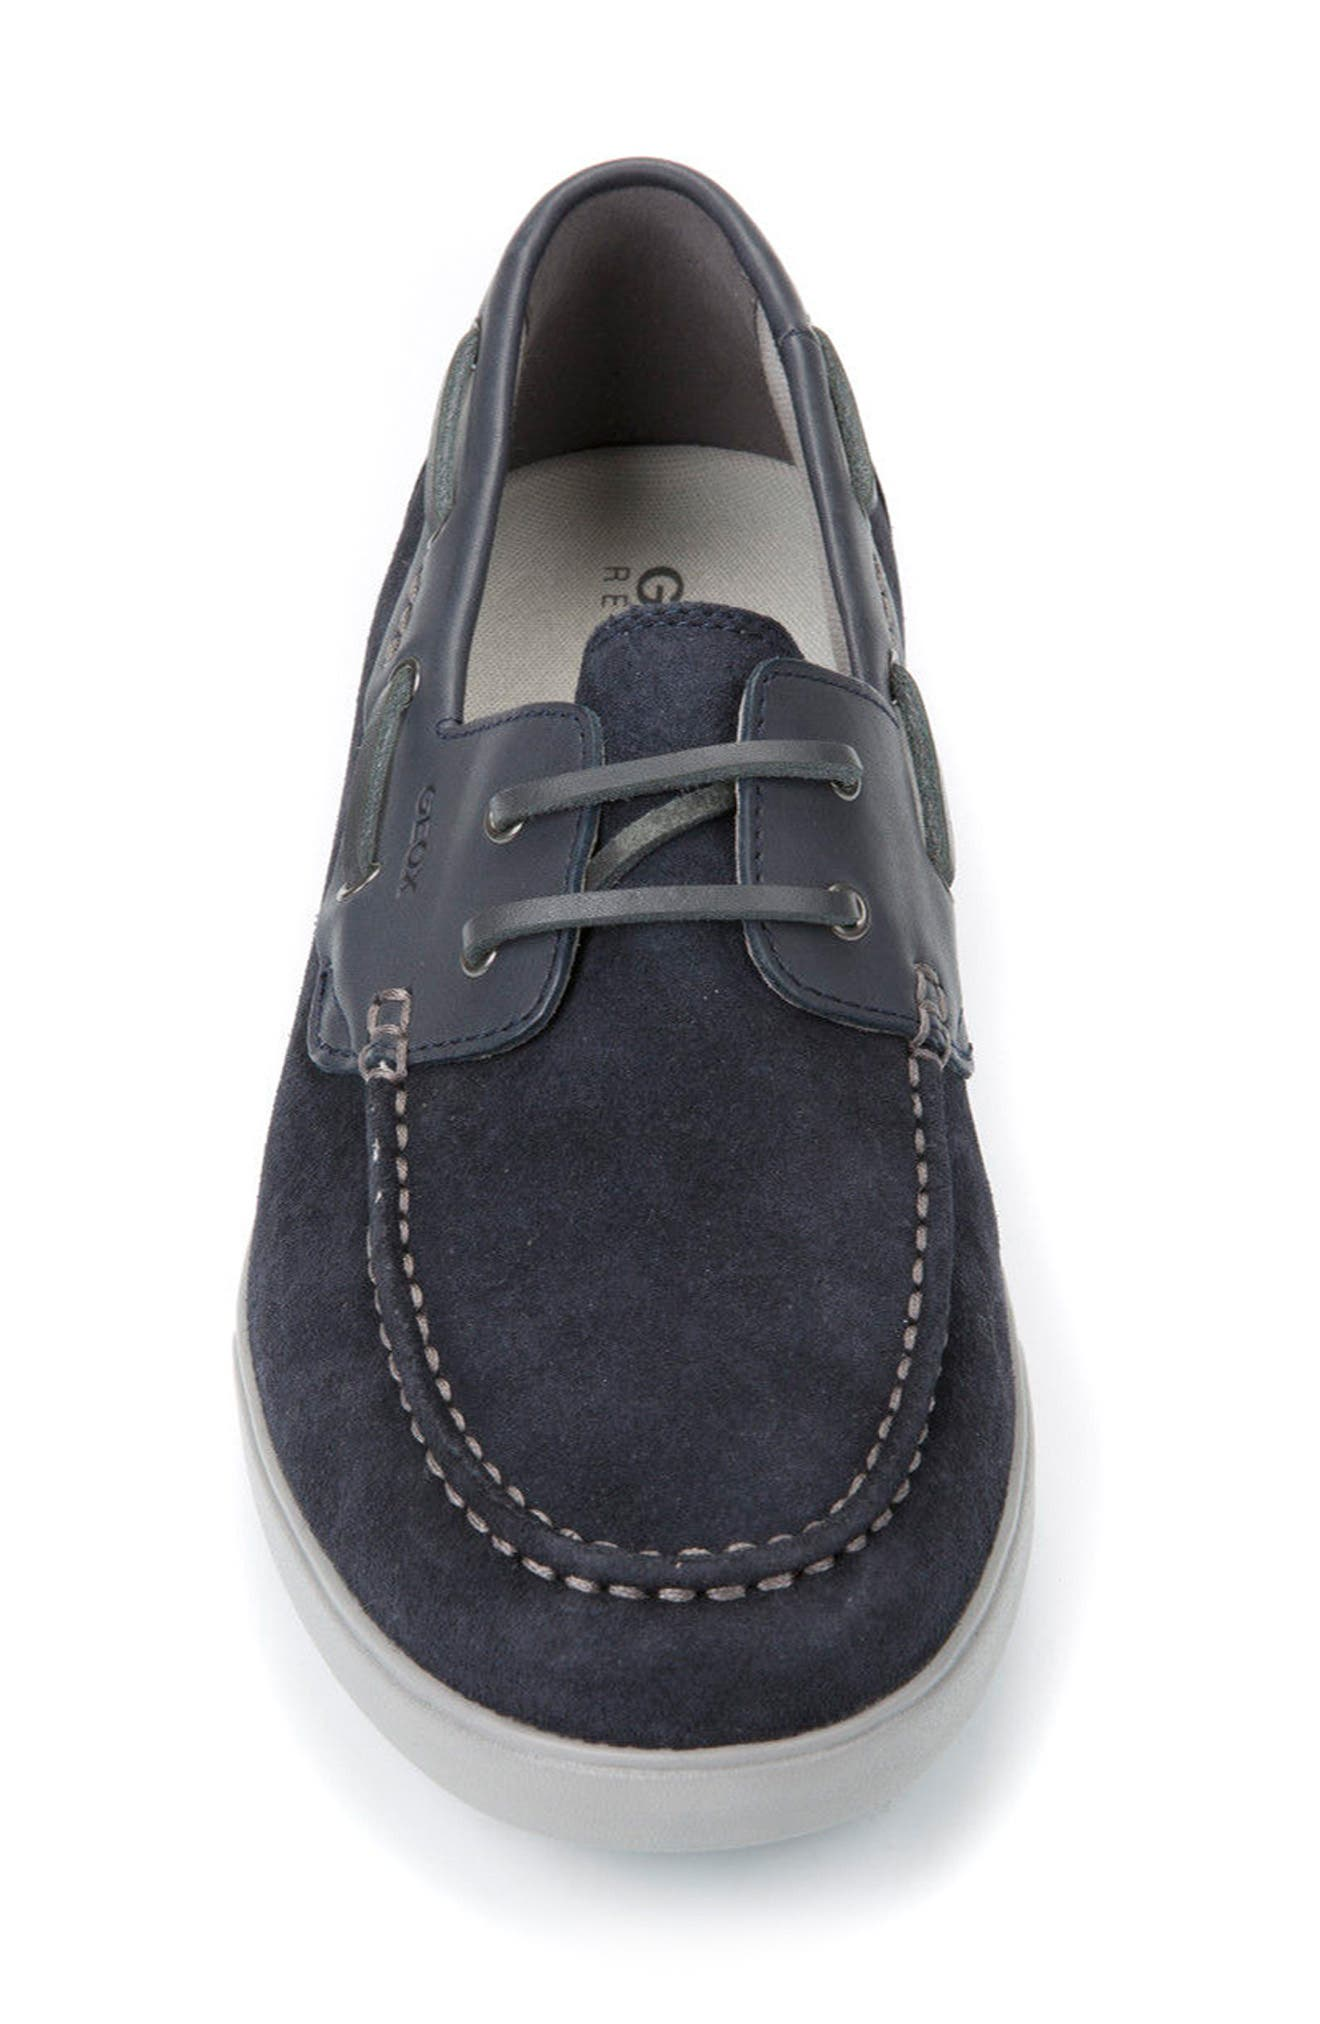 Walee 2 Boat Shoe,                             Alternate thumbnail 4, color,                             Navy Suede/ Leather